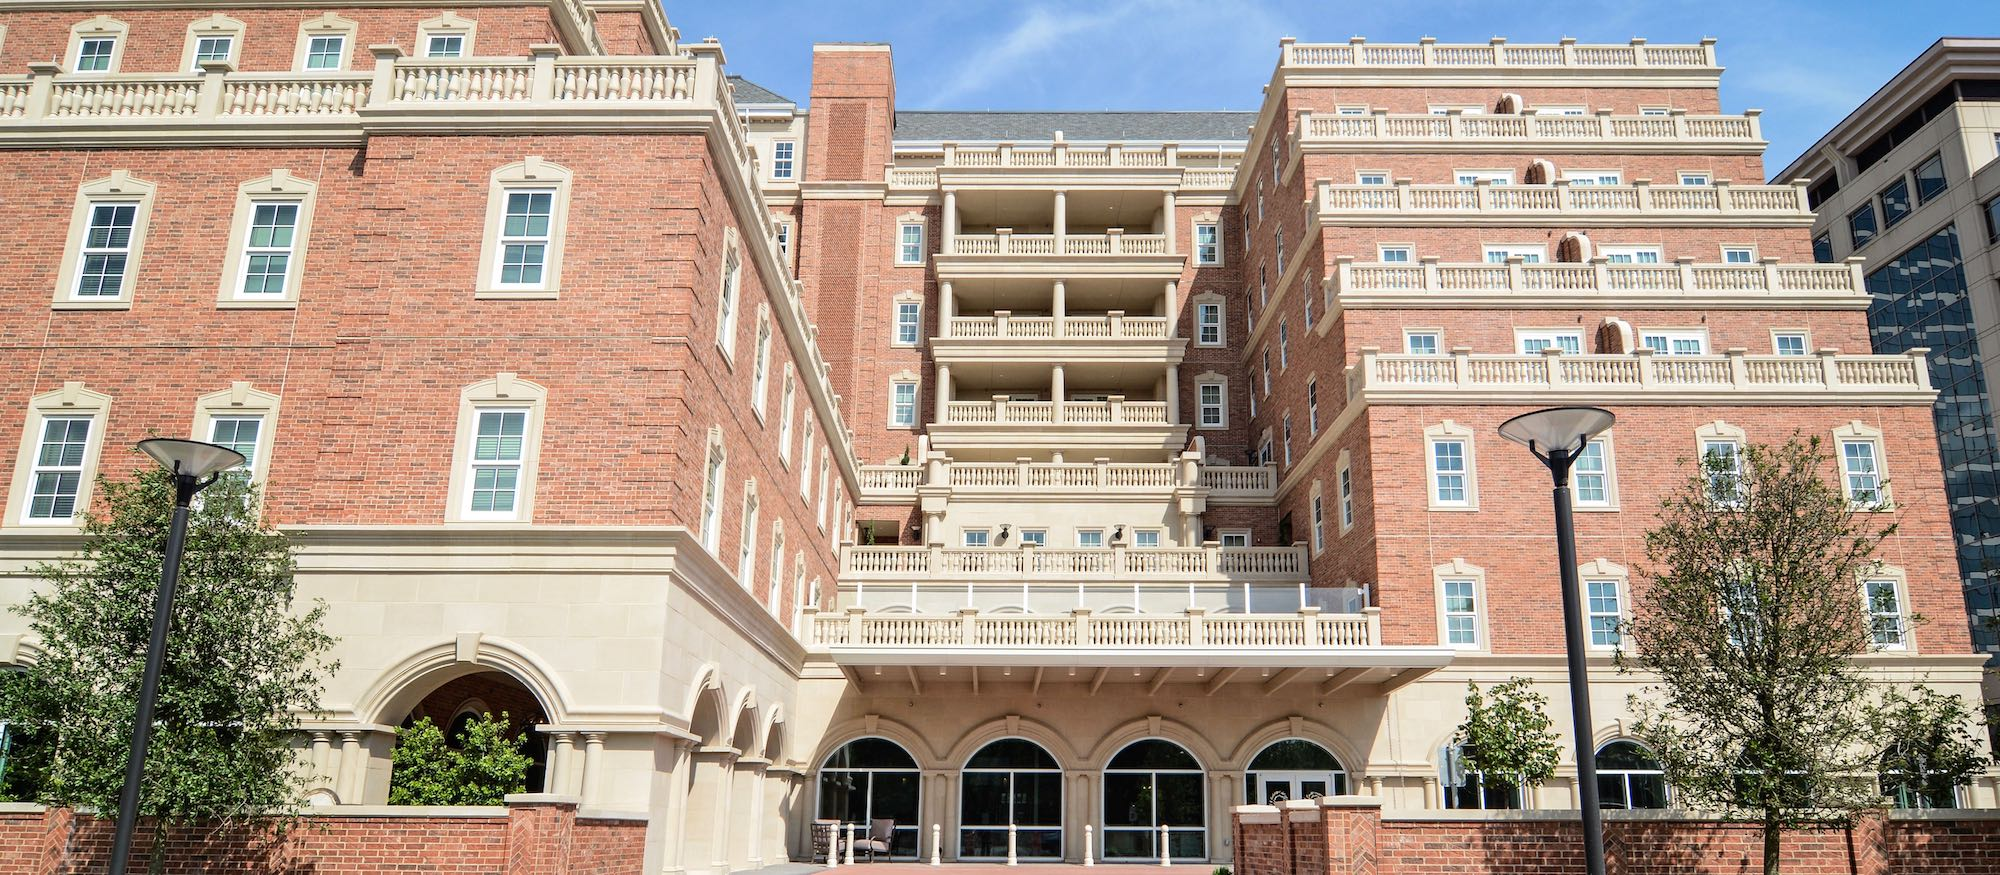 HarborChase of the Park Cities - Coordinated Custom Stone Manufacturing to Achieve Design Vision   Product: Cast Stone